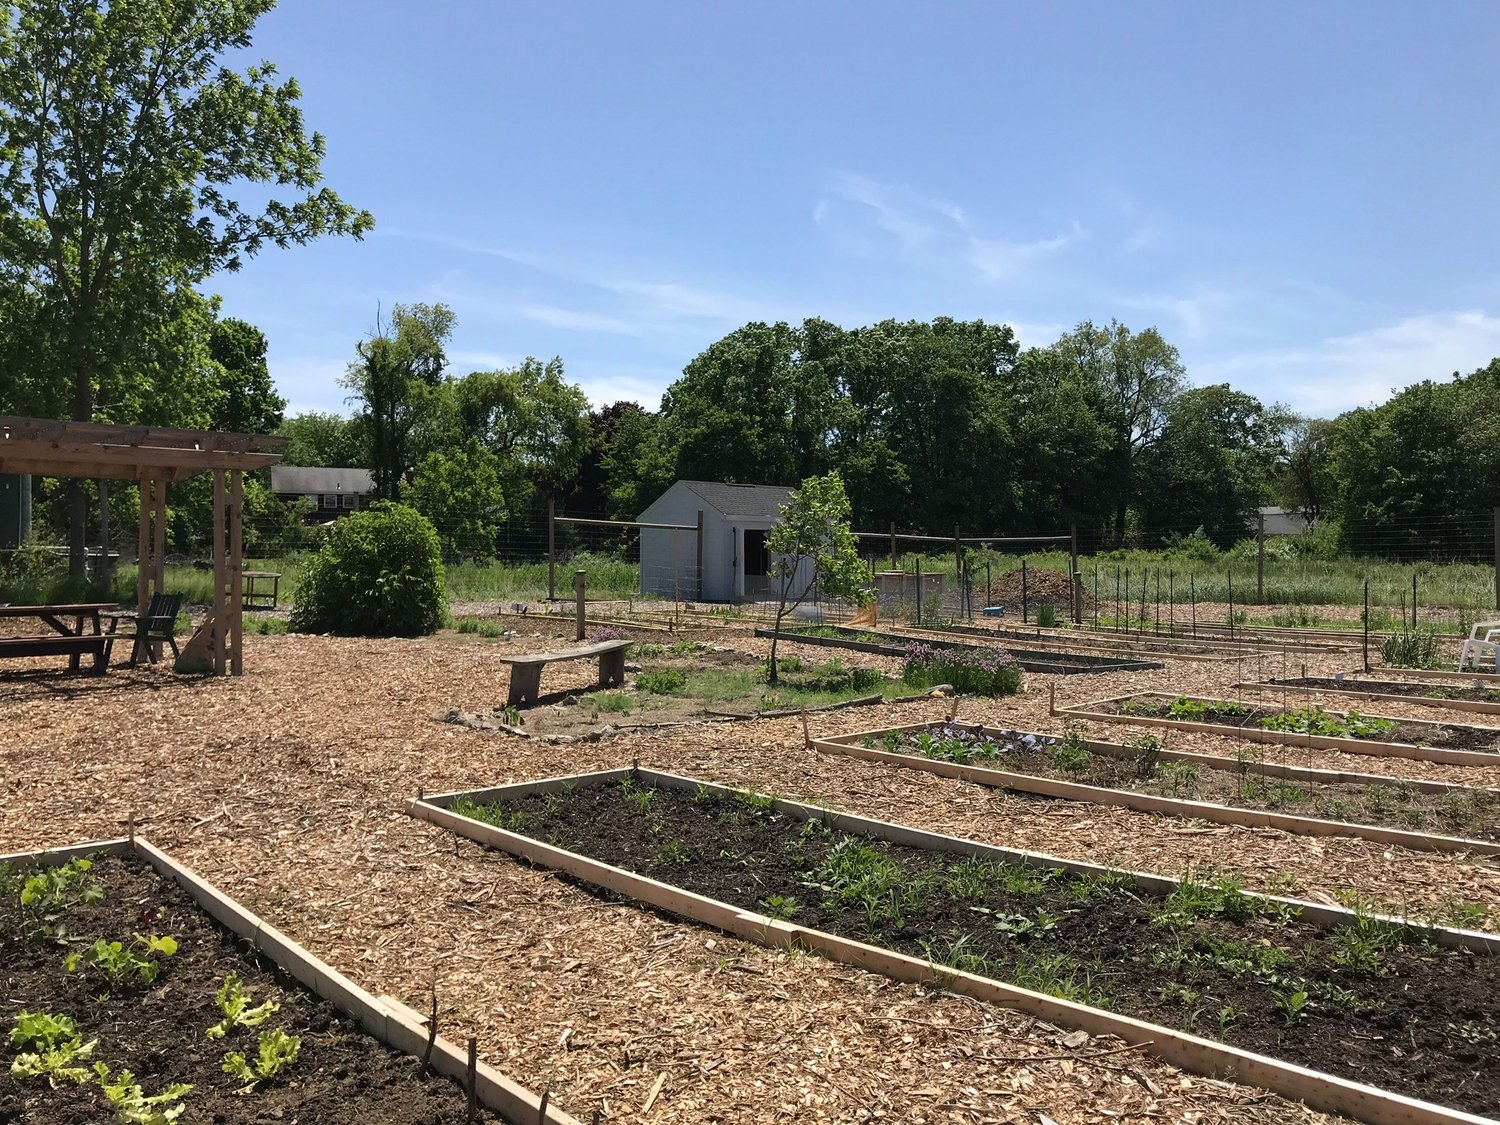 Officials with the Barrington Community Garden will hold plot registration from March 1 to 15 for those who leased a plot in 2020. For newcomers, the registration period runs March 16 to 31.